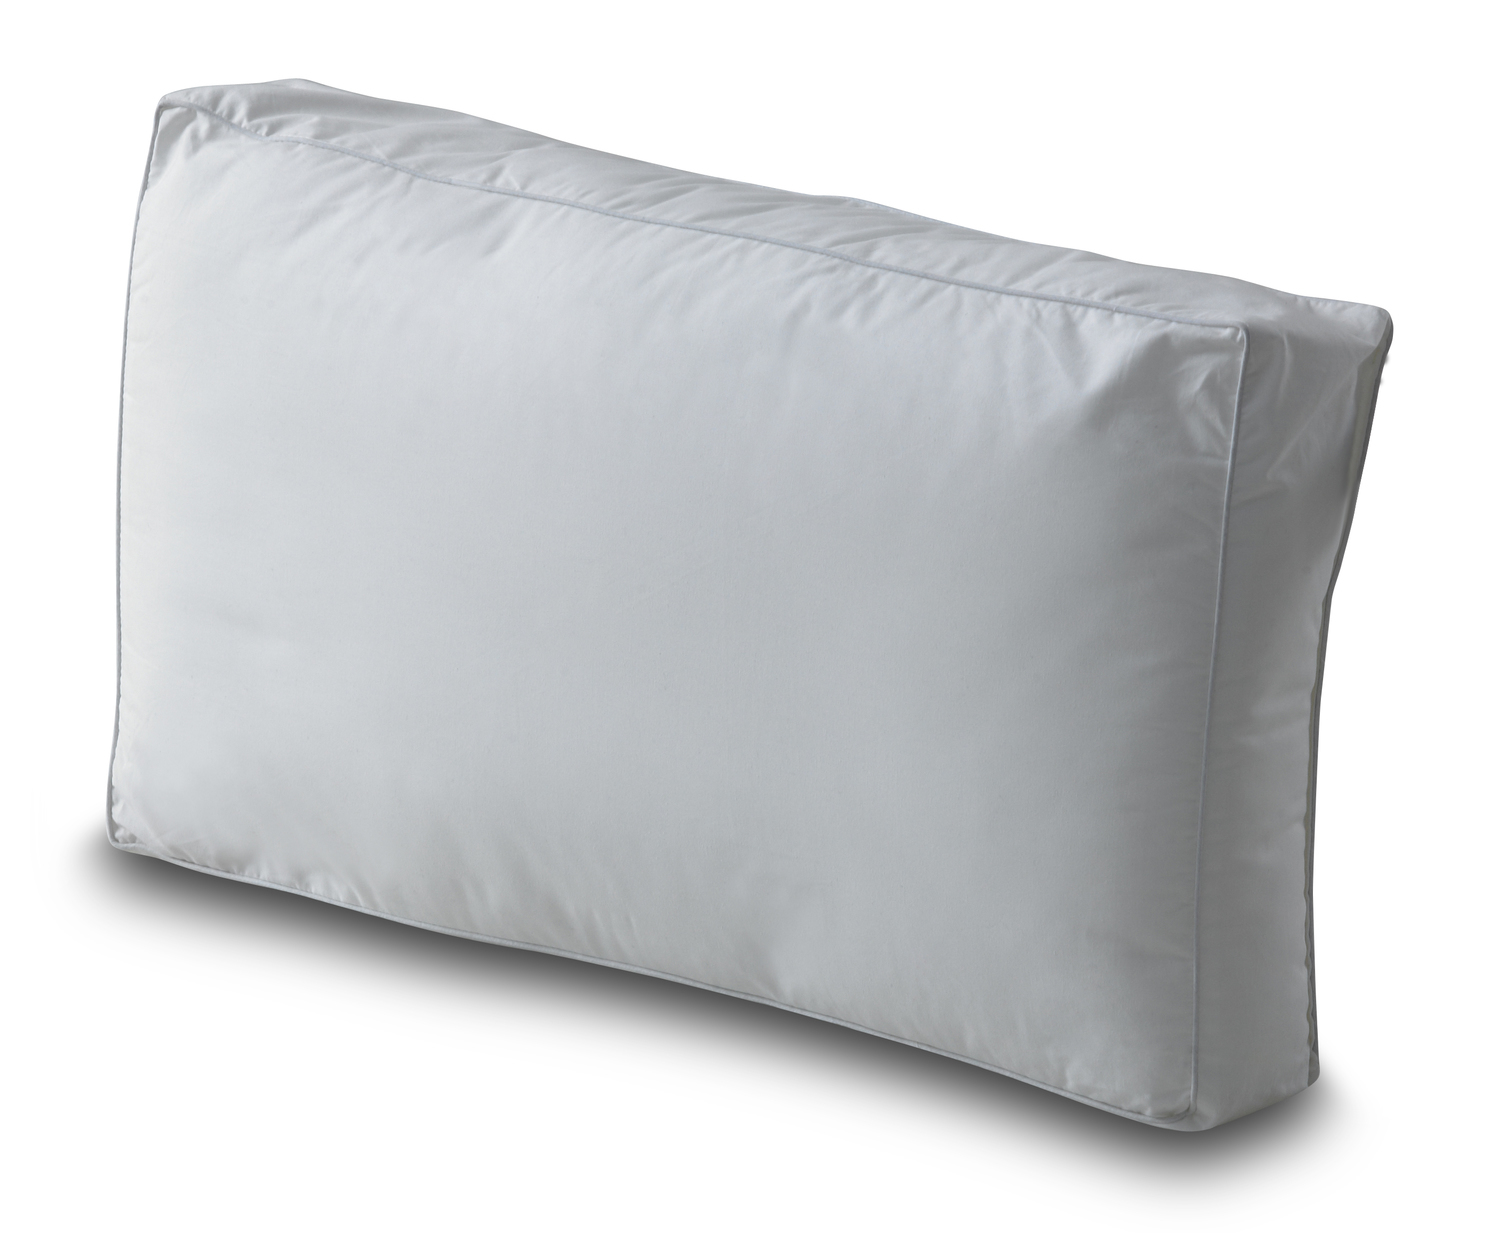 Dunlopillo Double Comfort Latex Layered Pillow